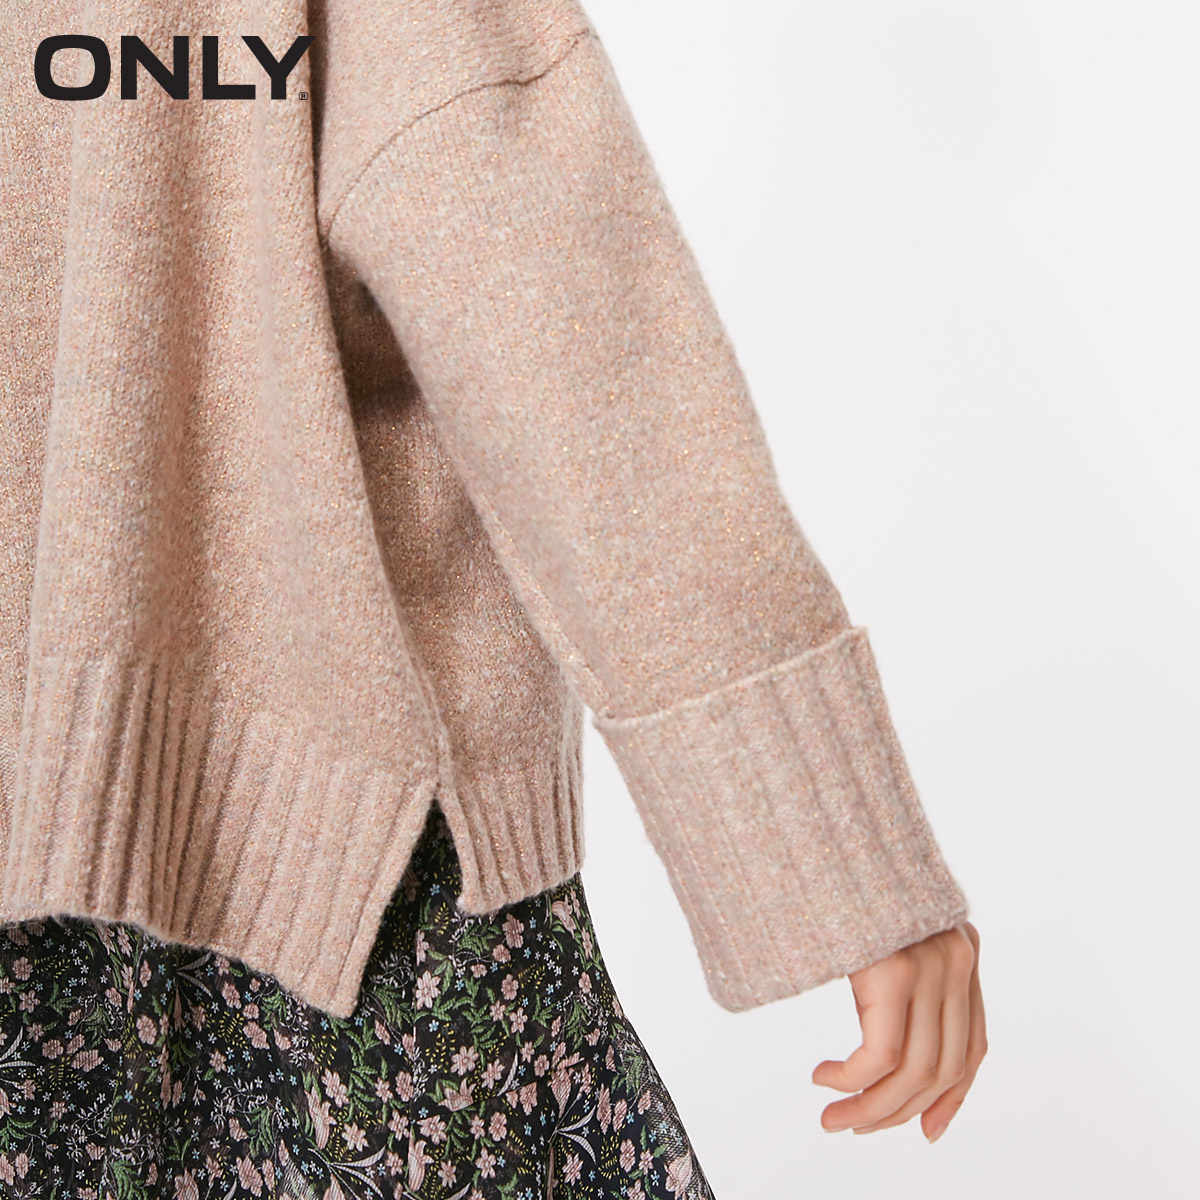 ONLY autumn and winter new high collar warm sweater women   | 118313521